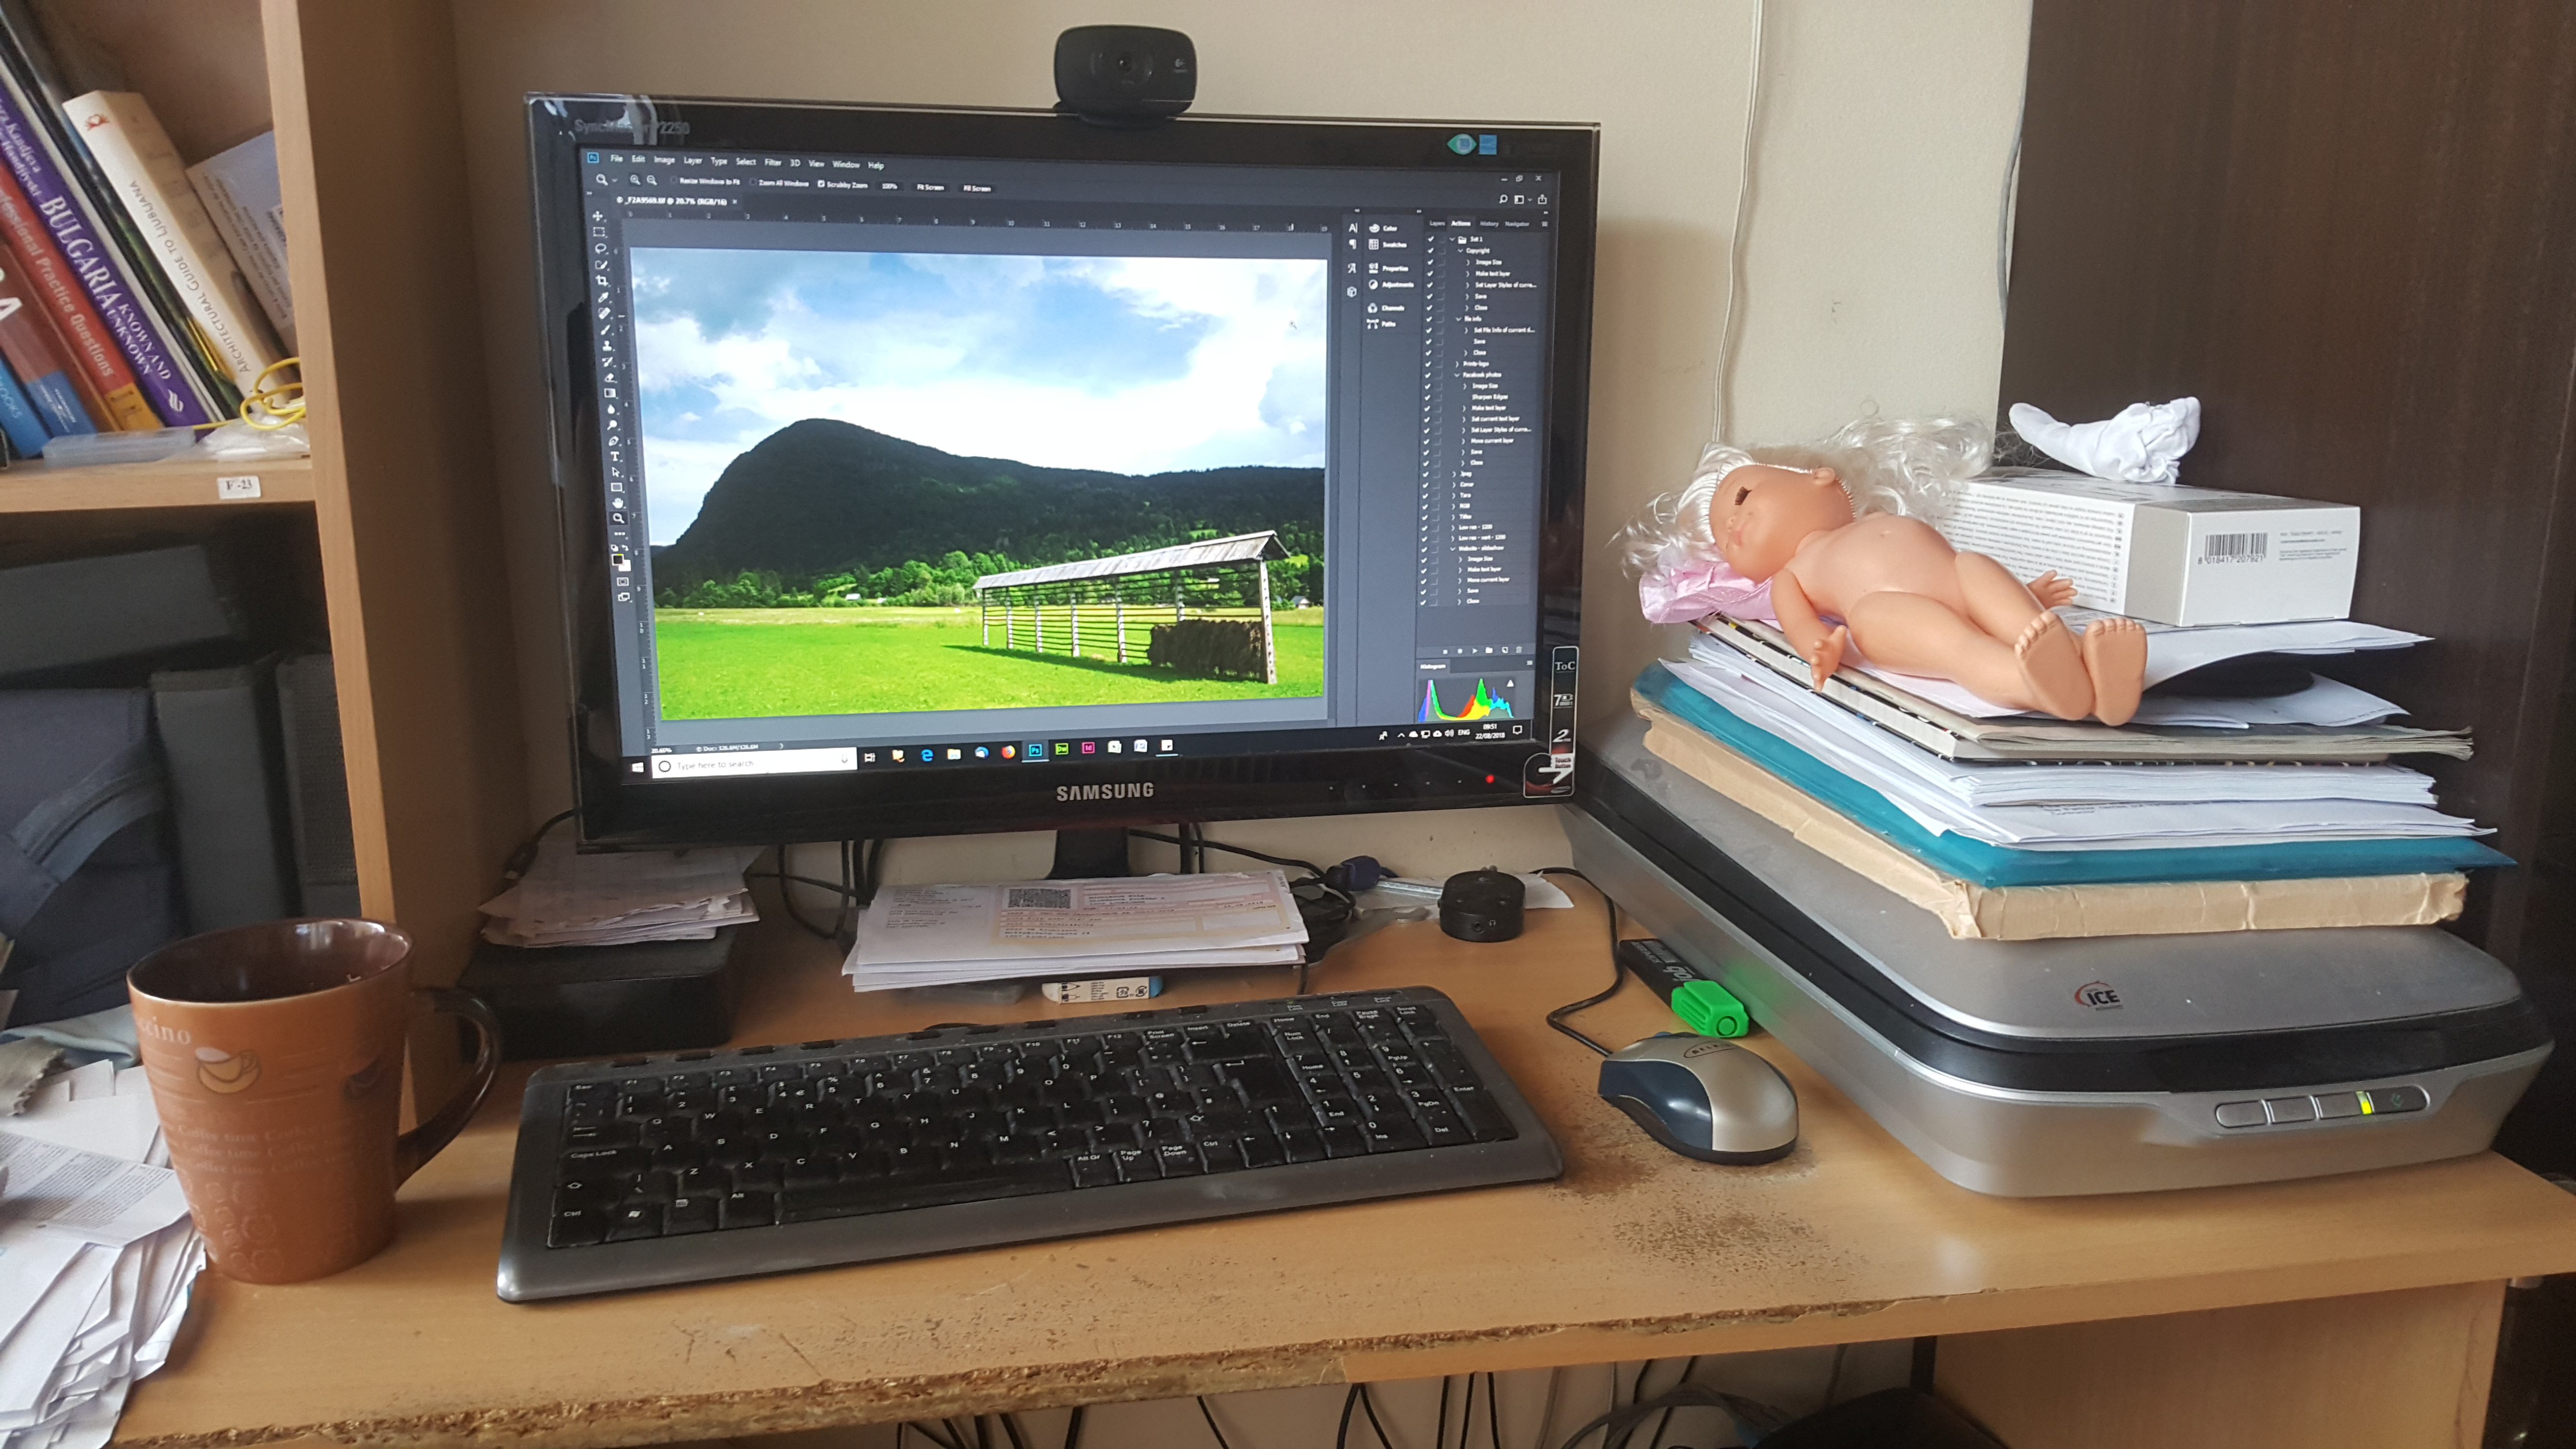 A photographer's life - When you have a 3 year old daughter and you work from home, this is what happens to your office.